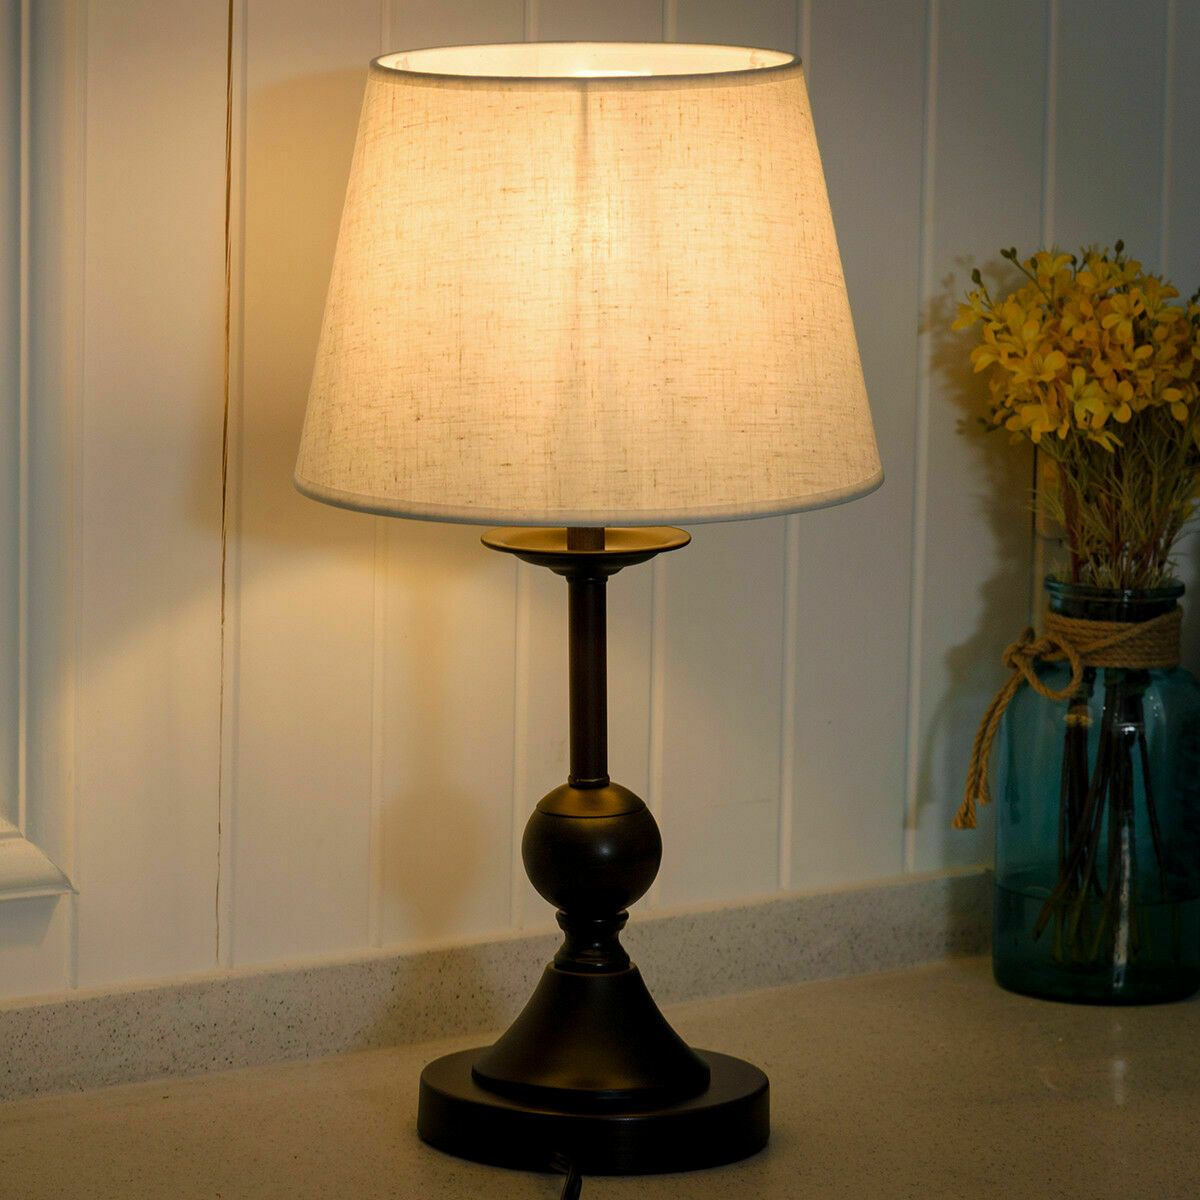 10 Antique Brass Bedside Table Lamp W Led Bulb Office Bedroom